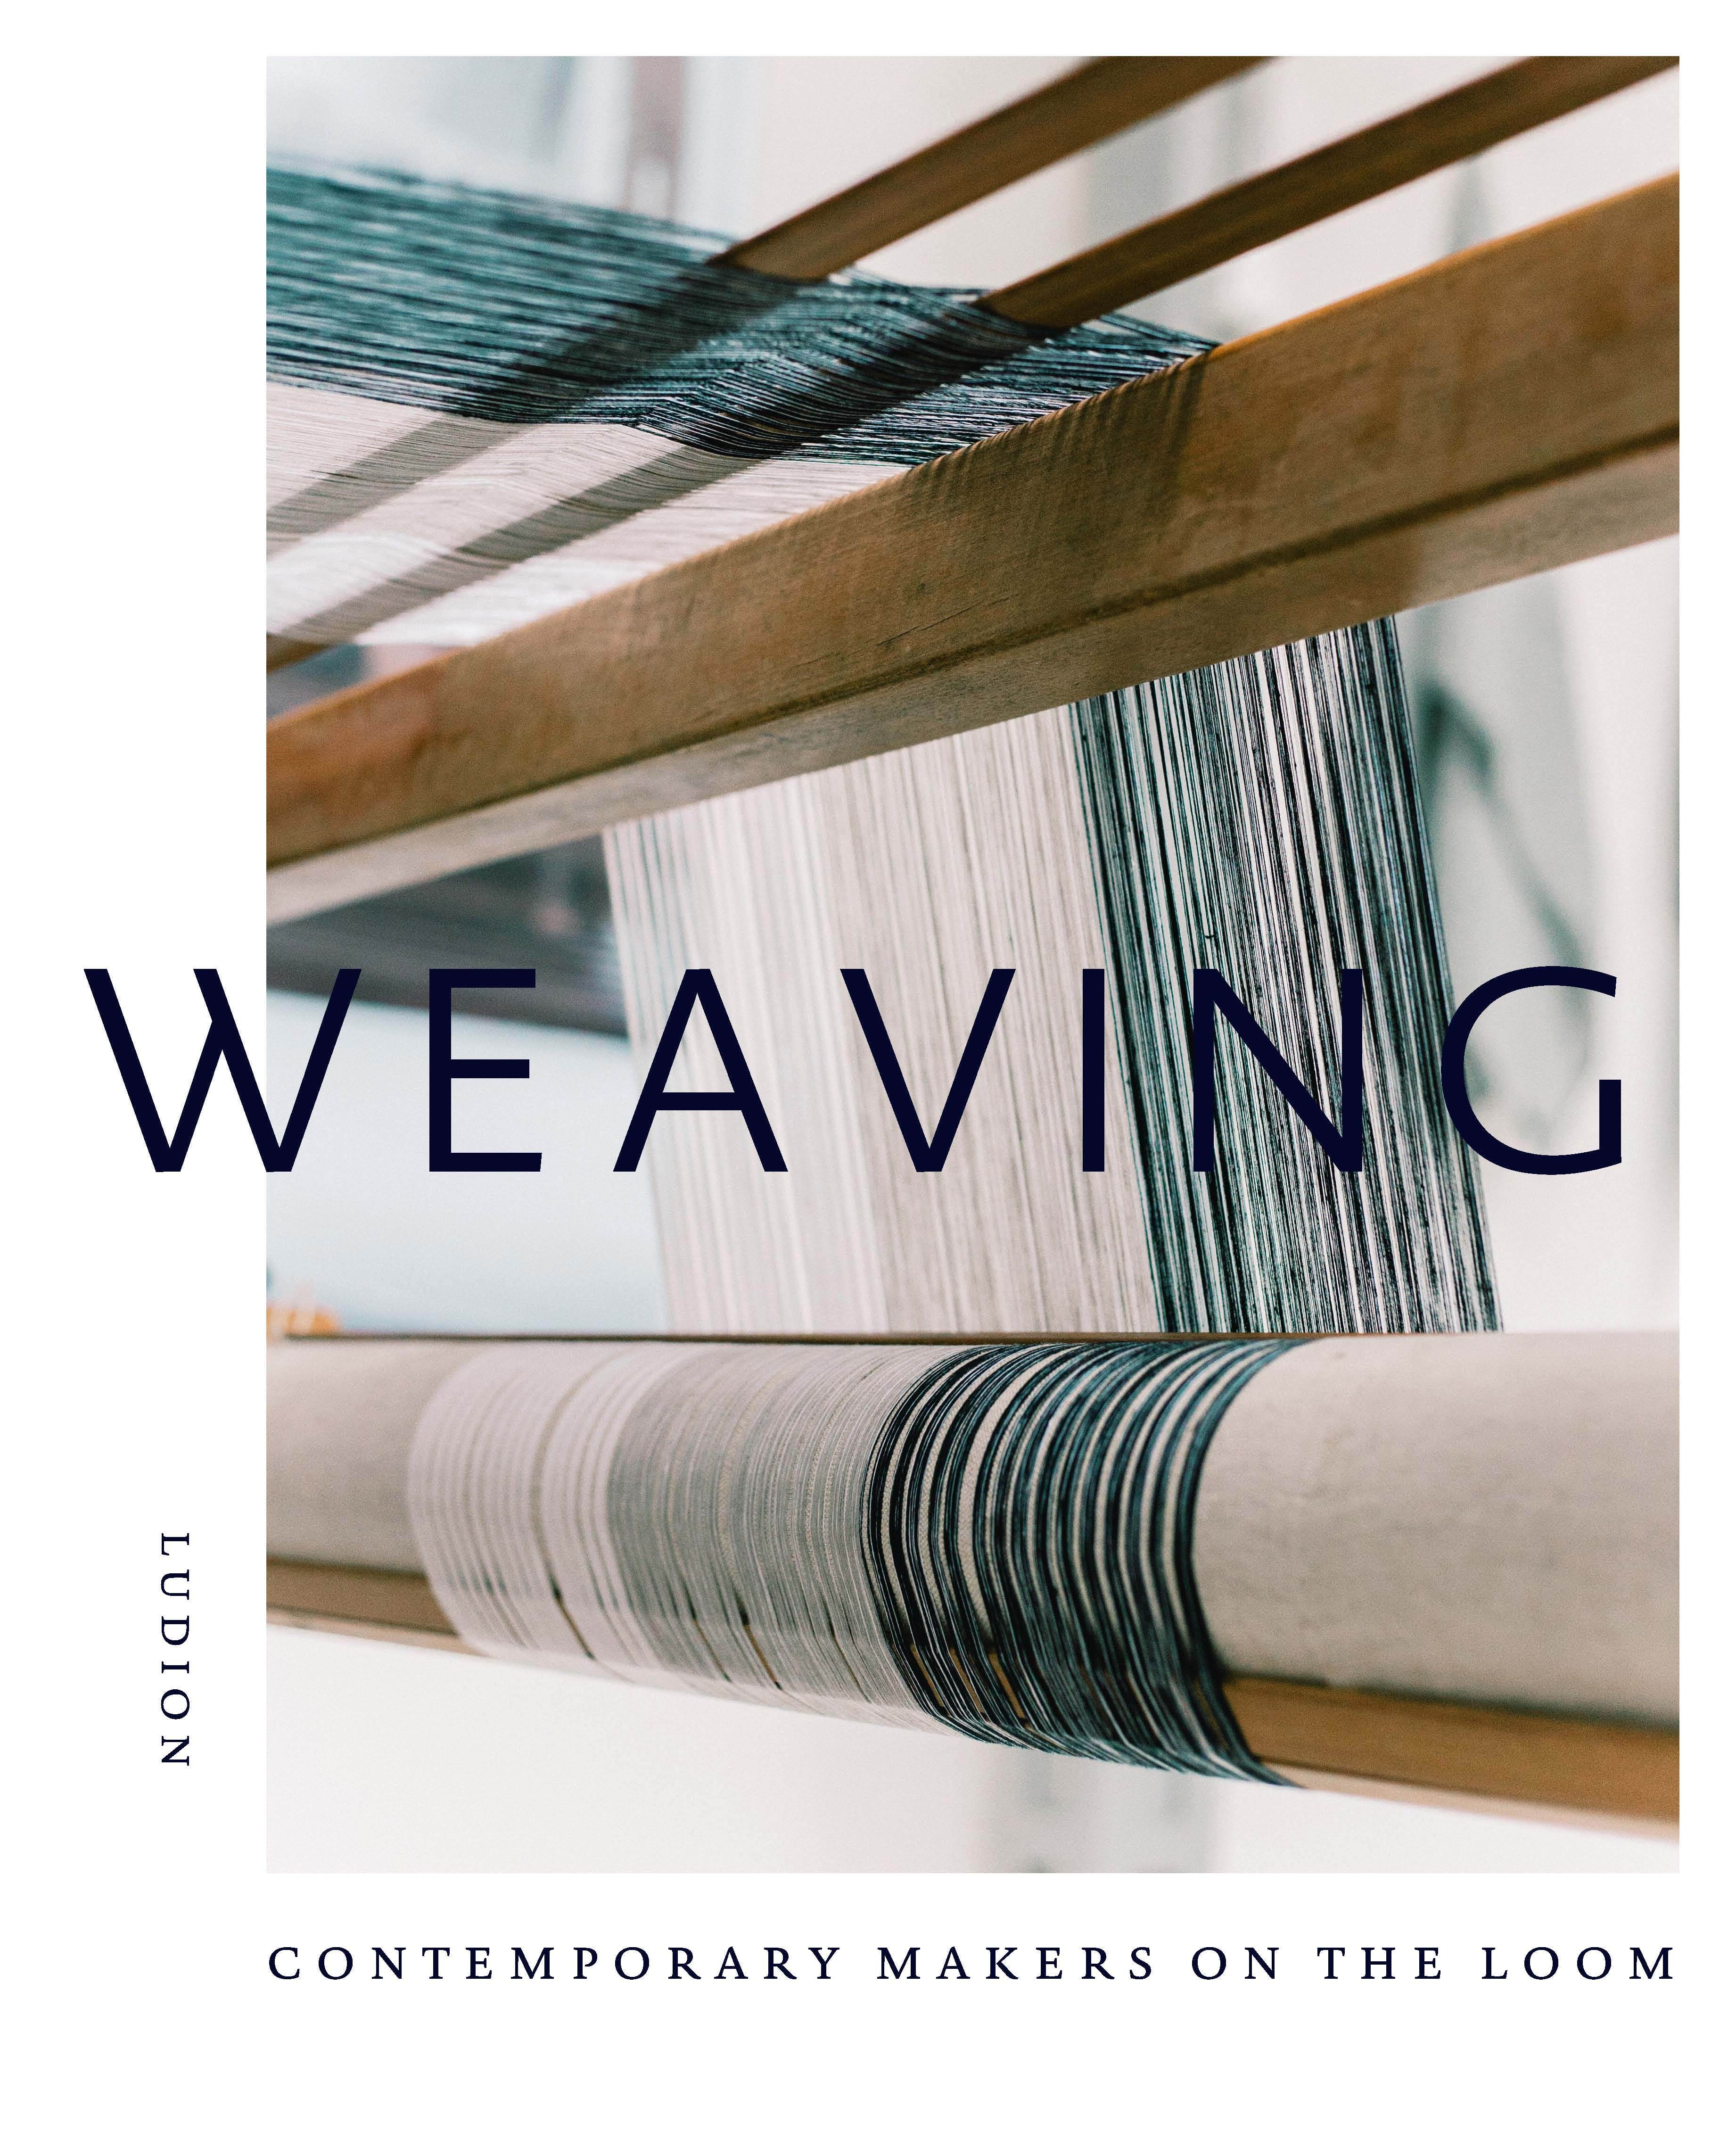 WEAVING: CONTEMPORARY MAKERS ON THE LOOM /ANGLAIS